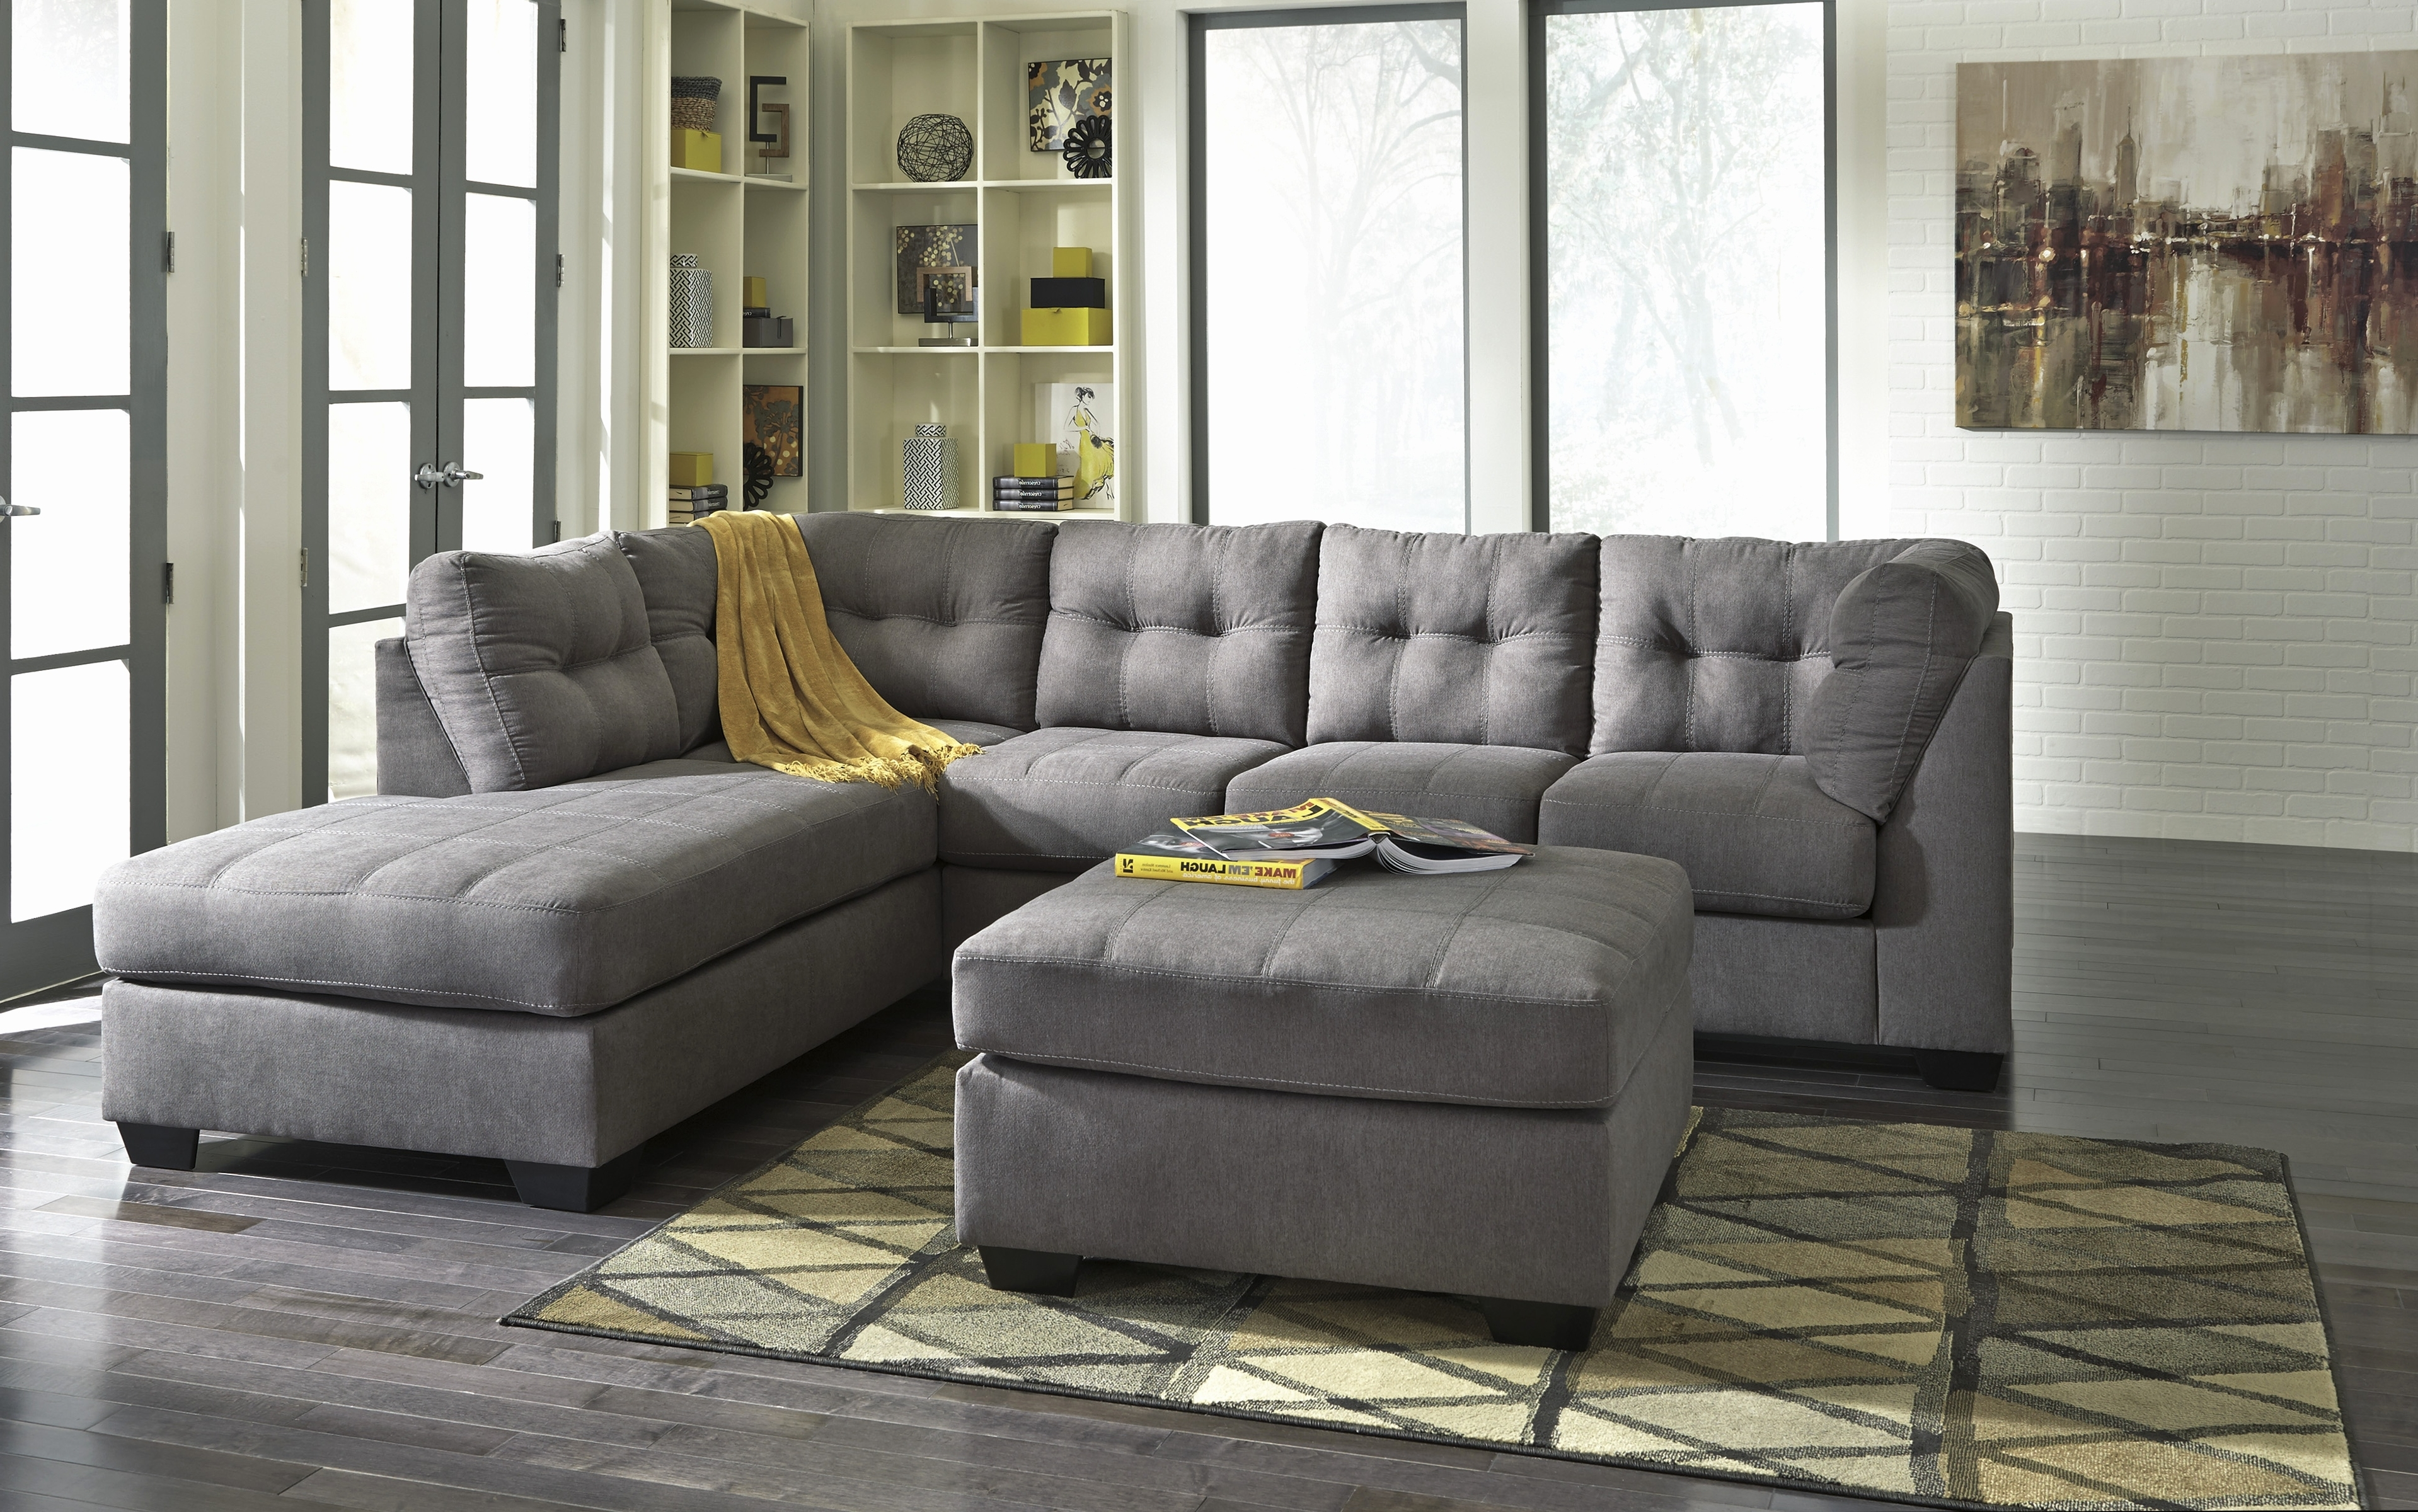 Grey Sectional Sofa Ashley Furniture 1025Theparty Com With Sofas In 2017 Sectional Sofas At Ashley Furniture (View 8 of 15)